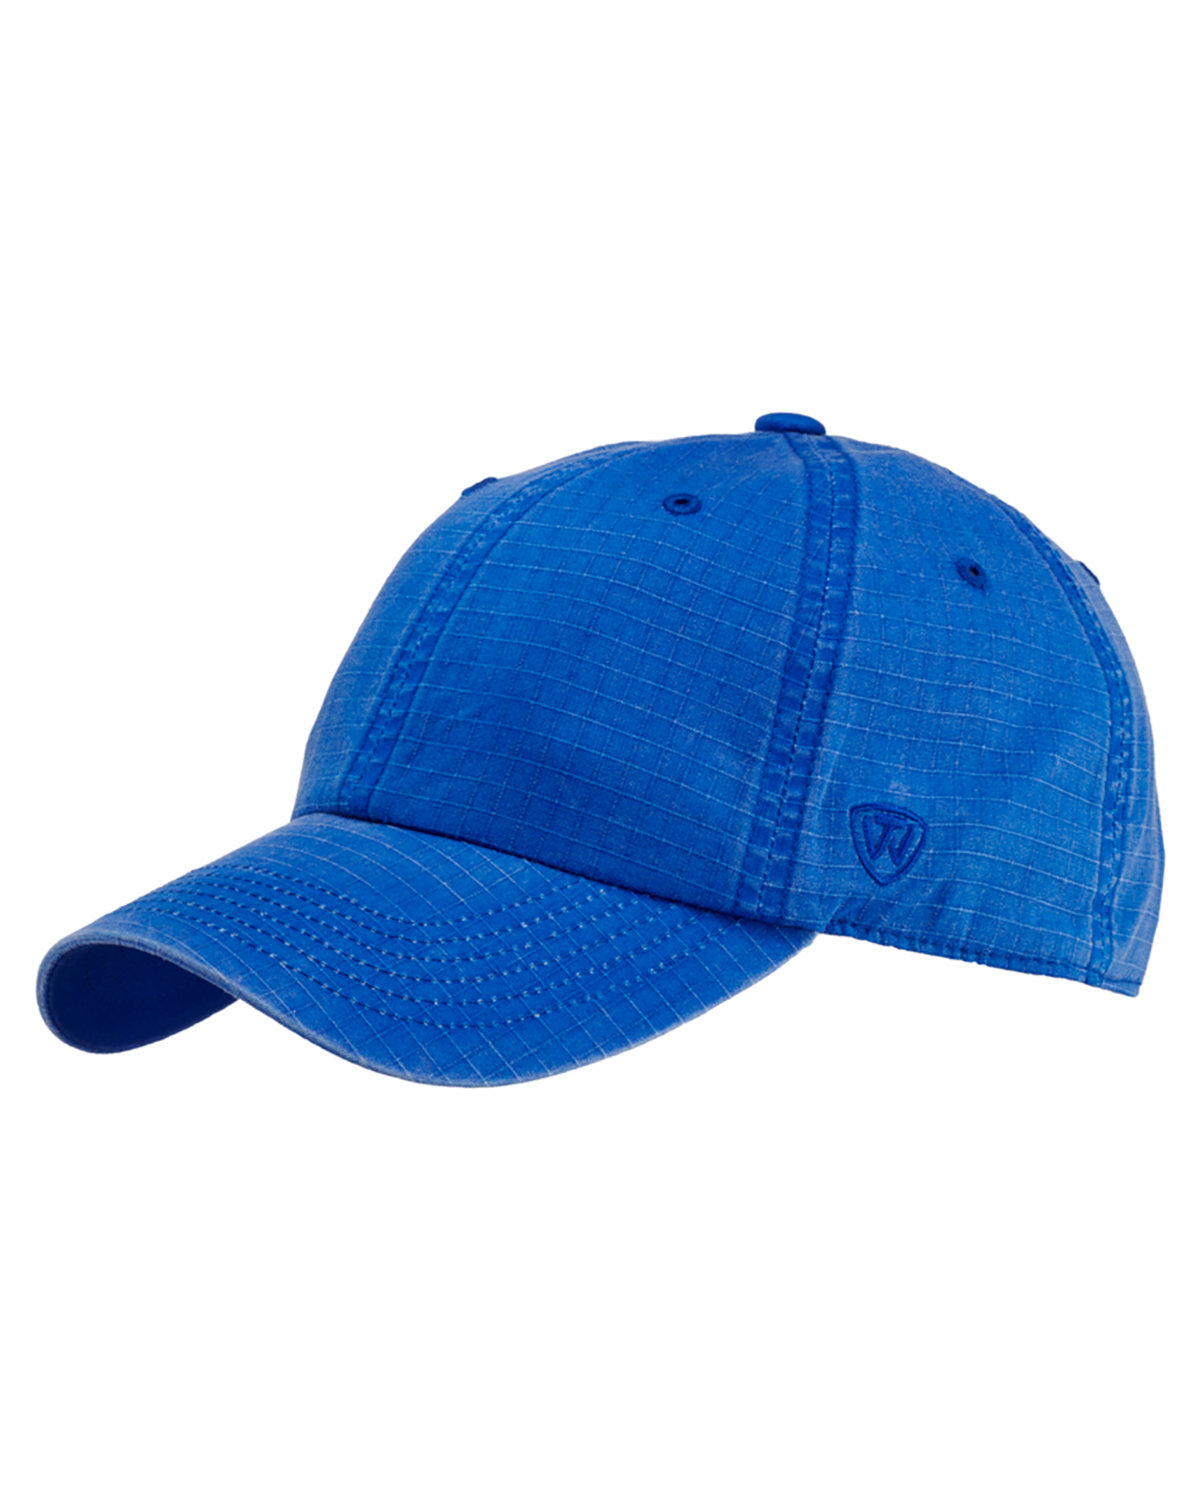 Top Of The World Ripper Washed Cotton Ripstop Hat ROYAL